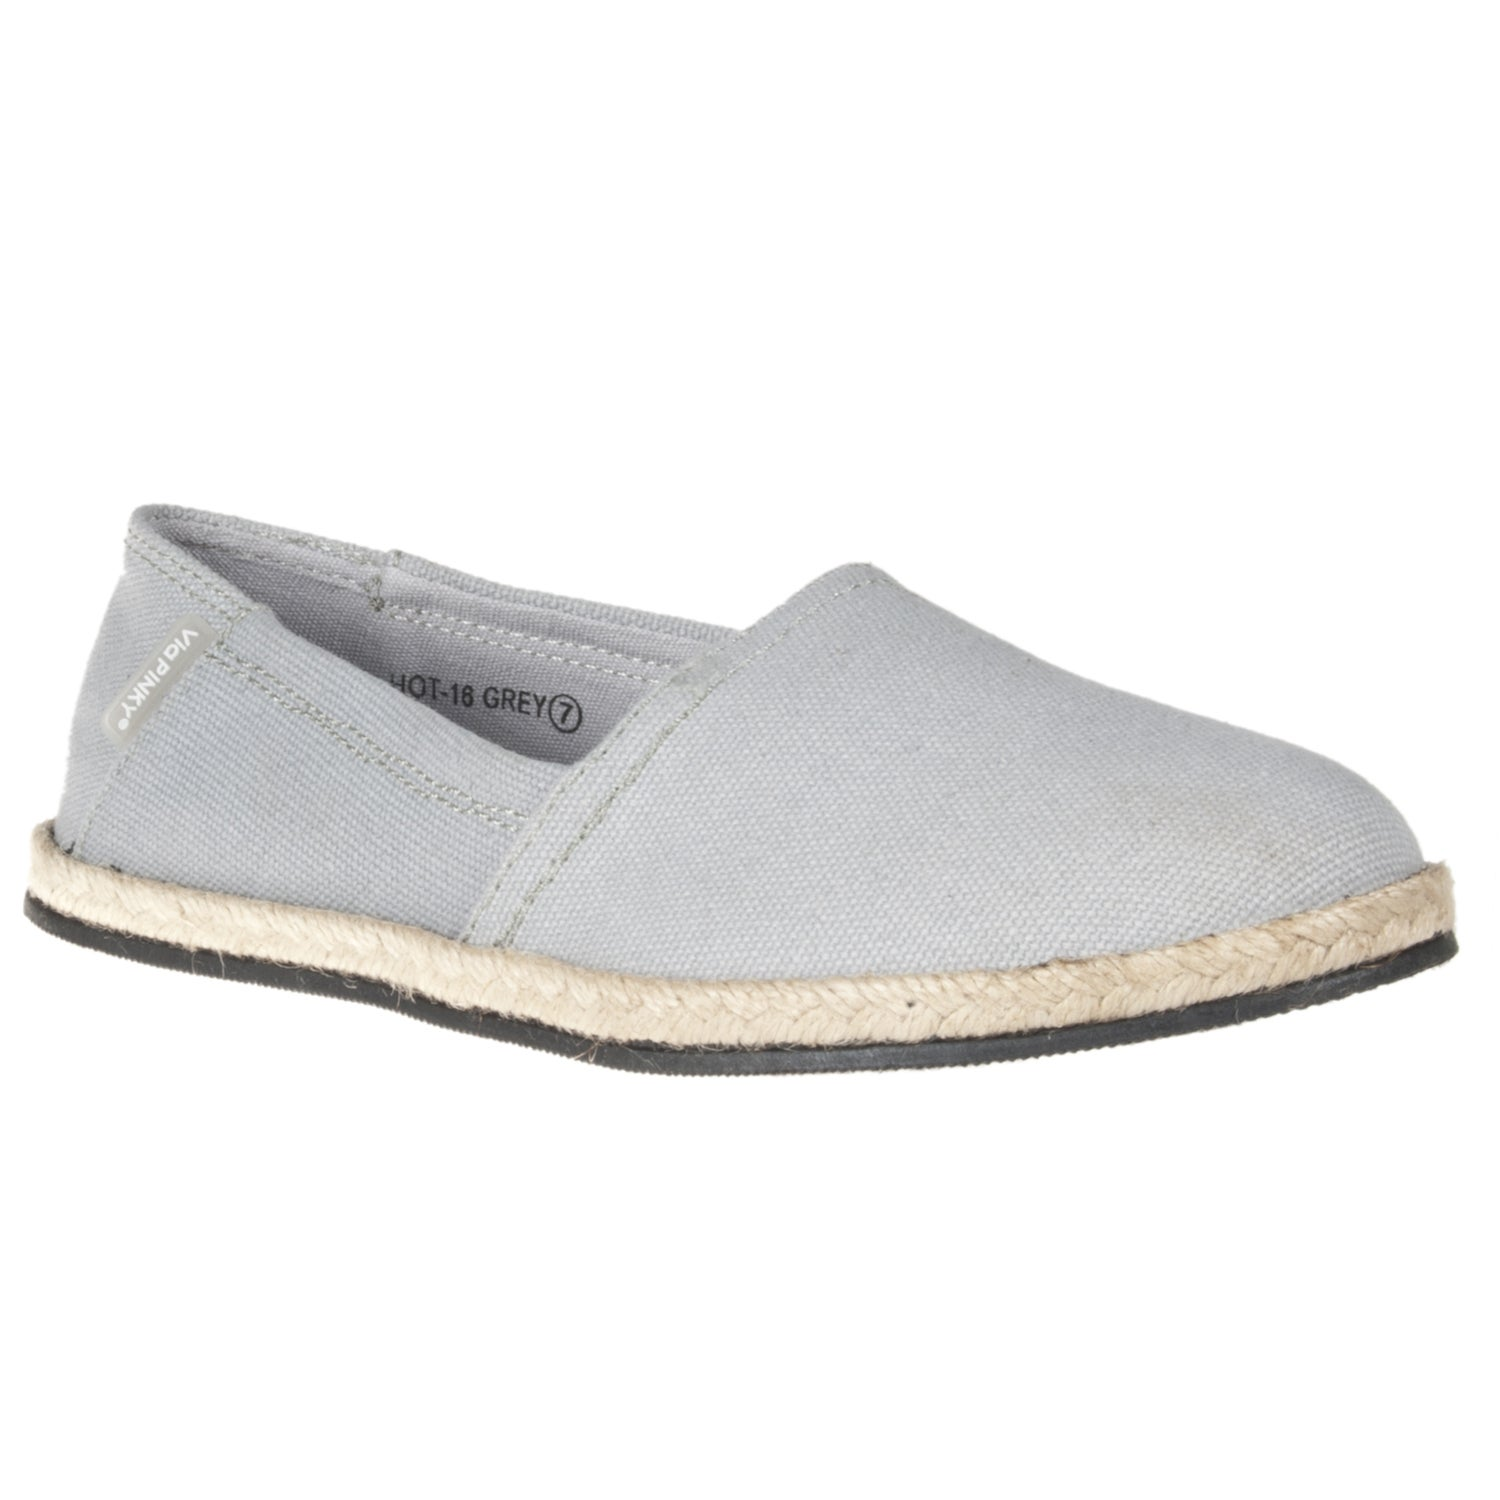 Riverberry Women's 'Hot' Grey Canvas Slip-ons